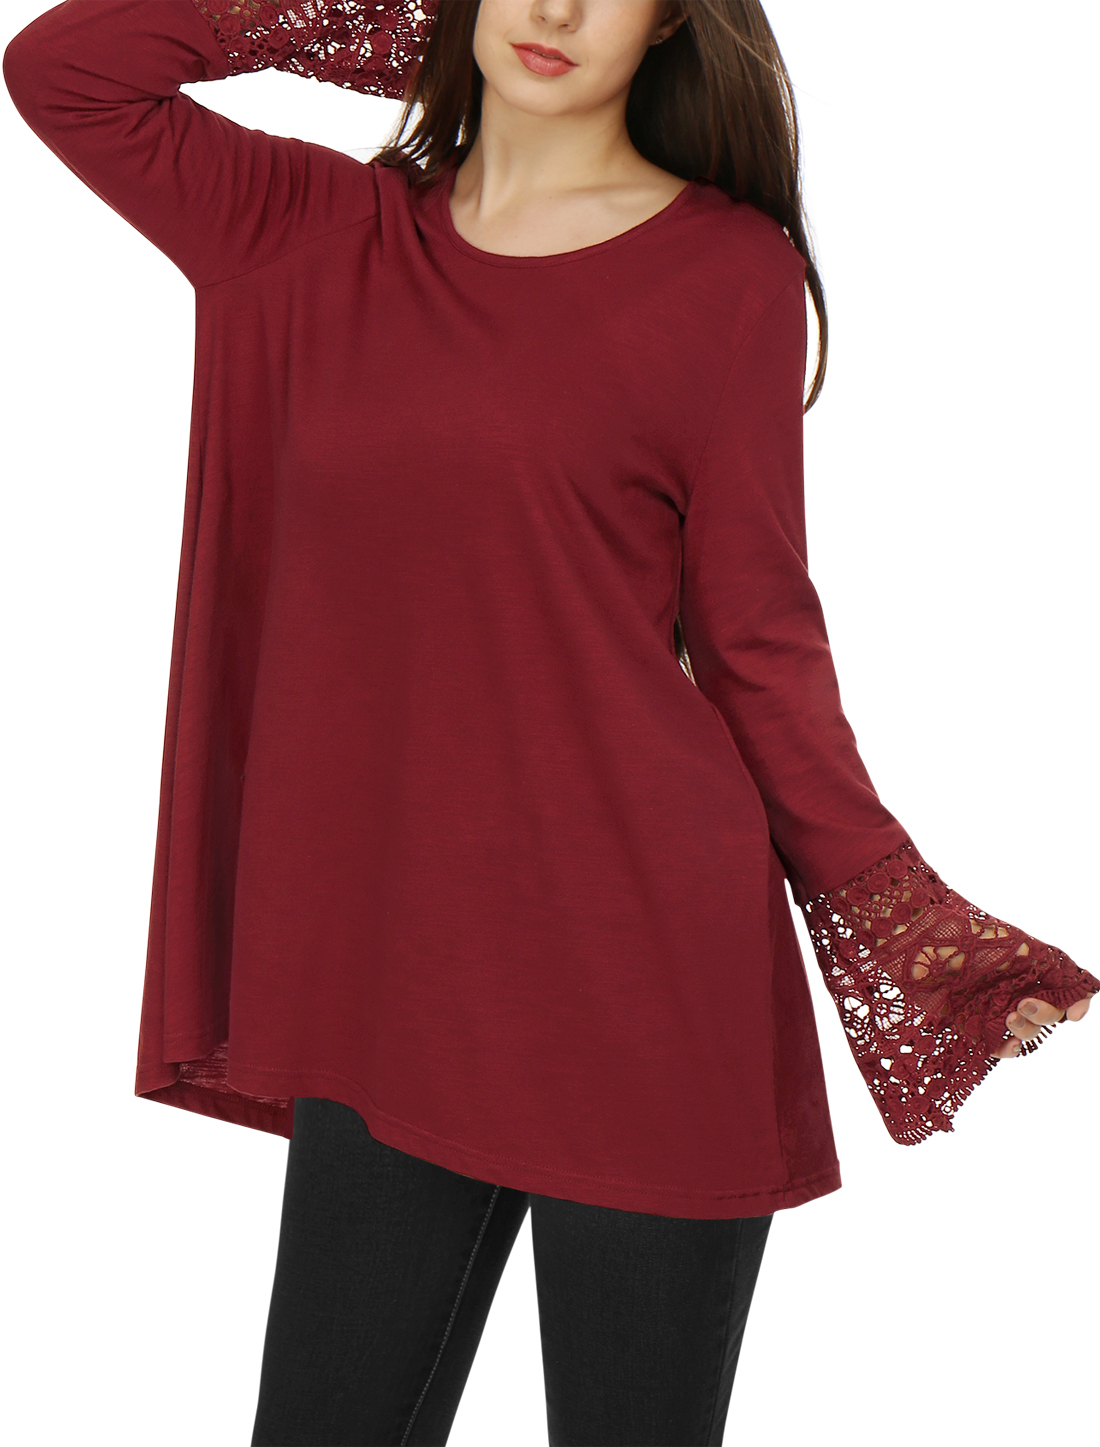 Women Crochet Panel Bell Sleeves Loose Tunic Top Red L